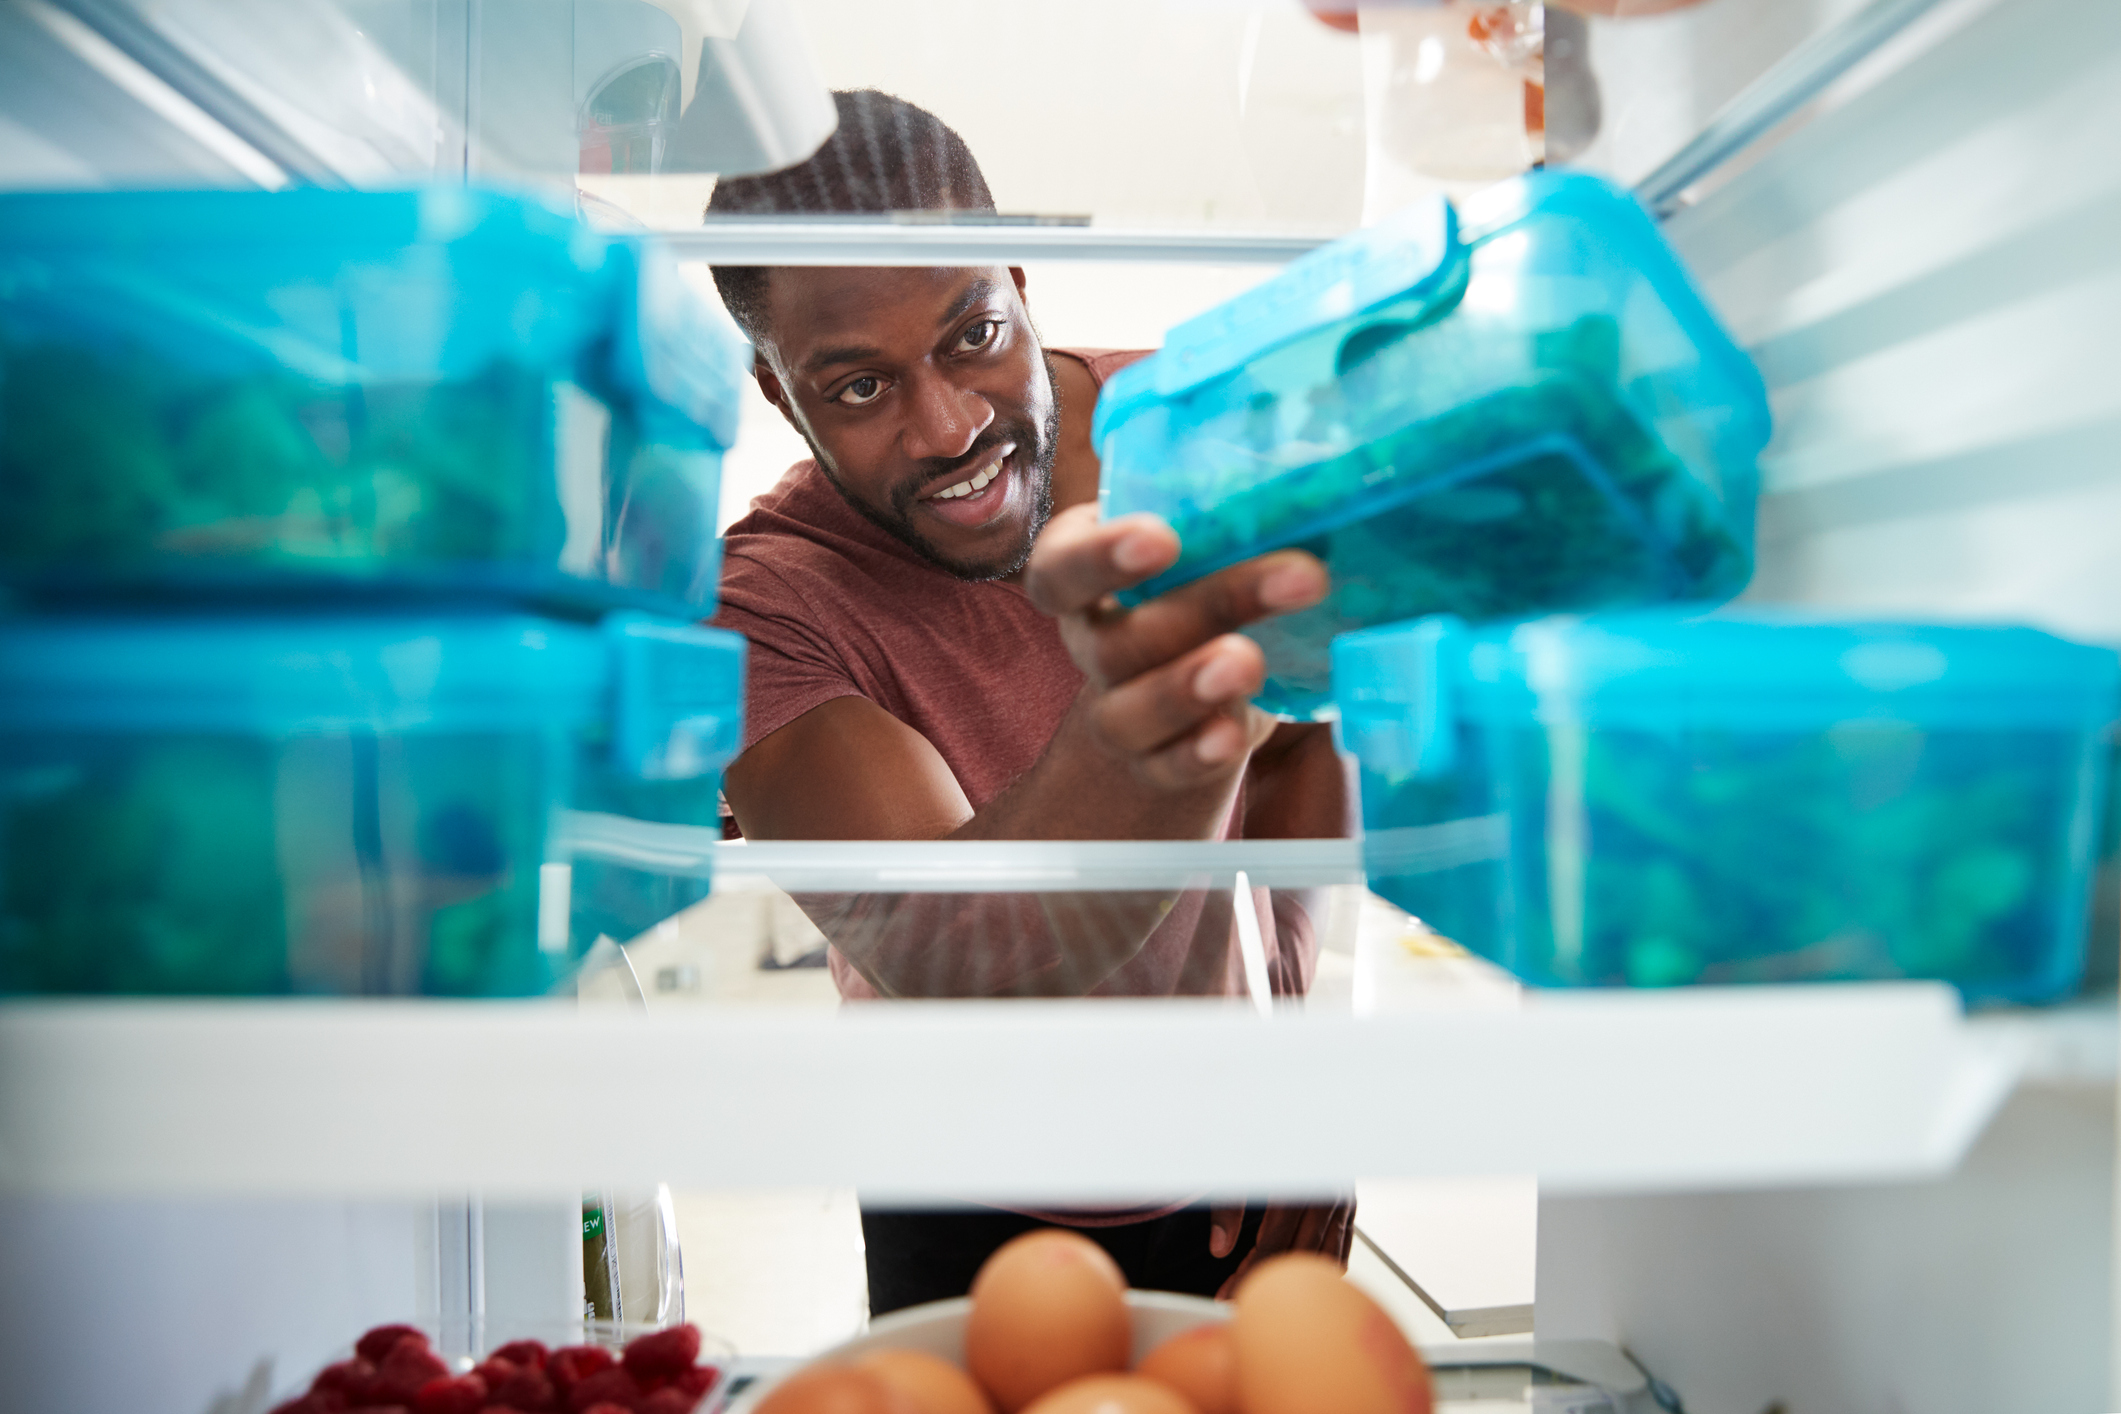 Man pulling prepped meals out of the fridge